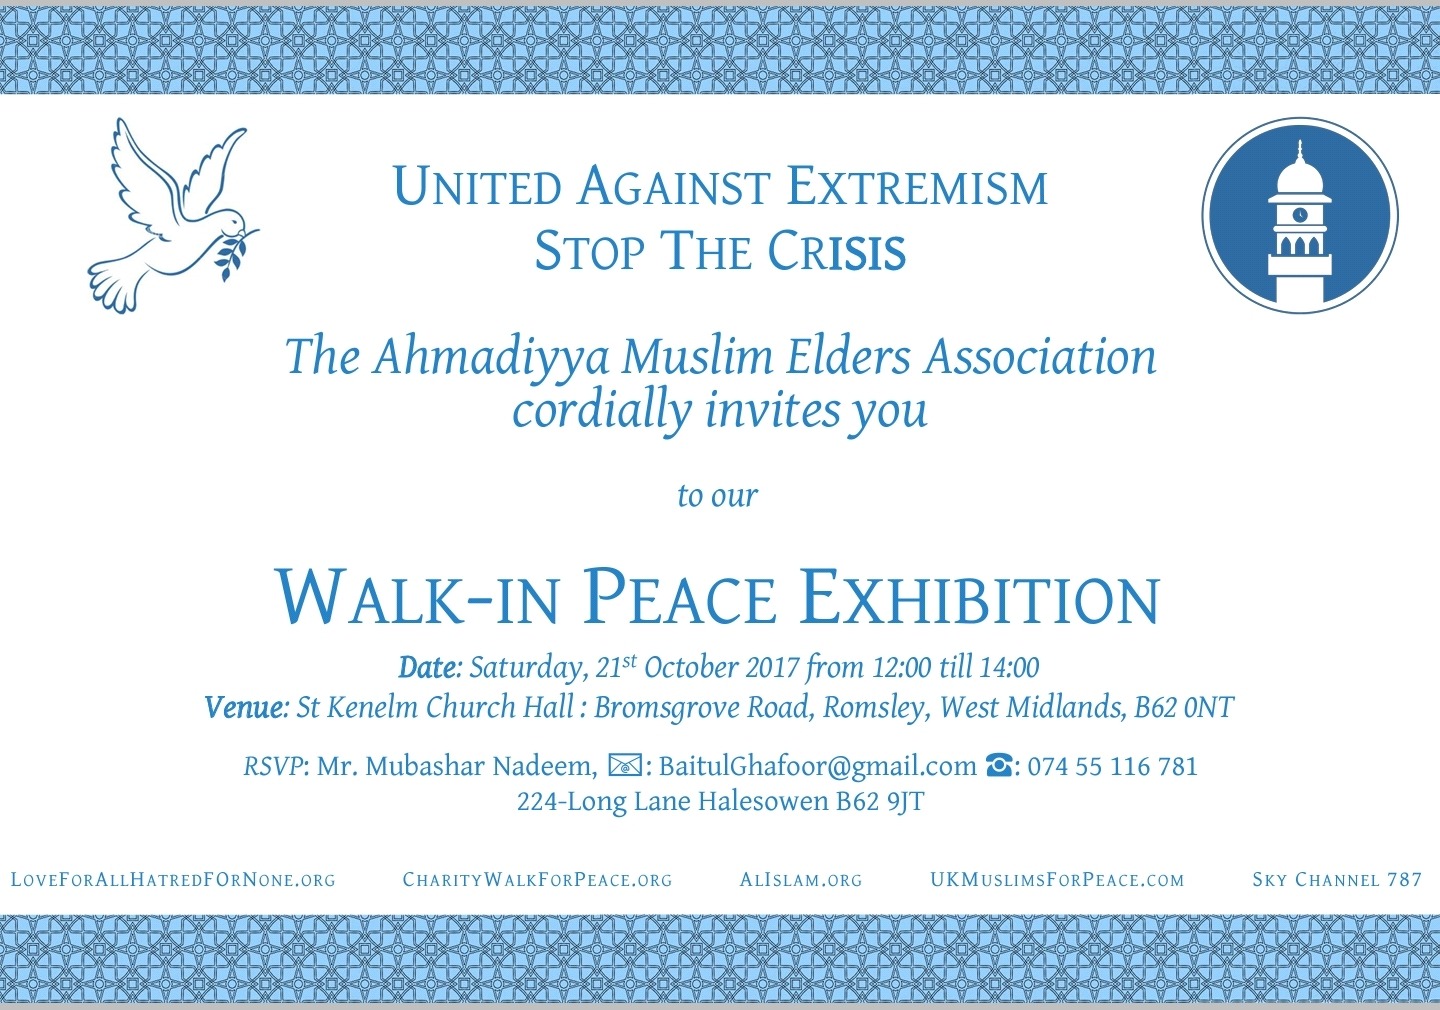 Peace exhibition will be held in Romsley